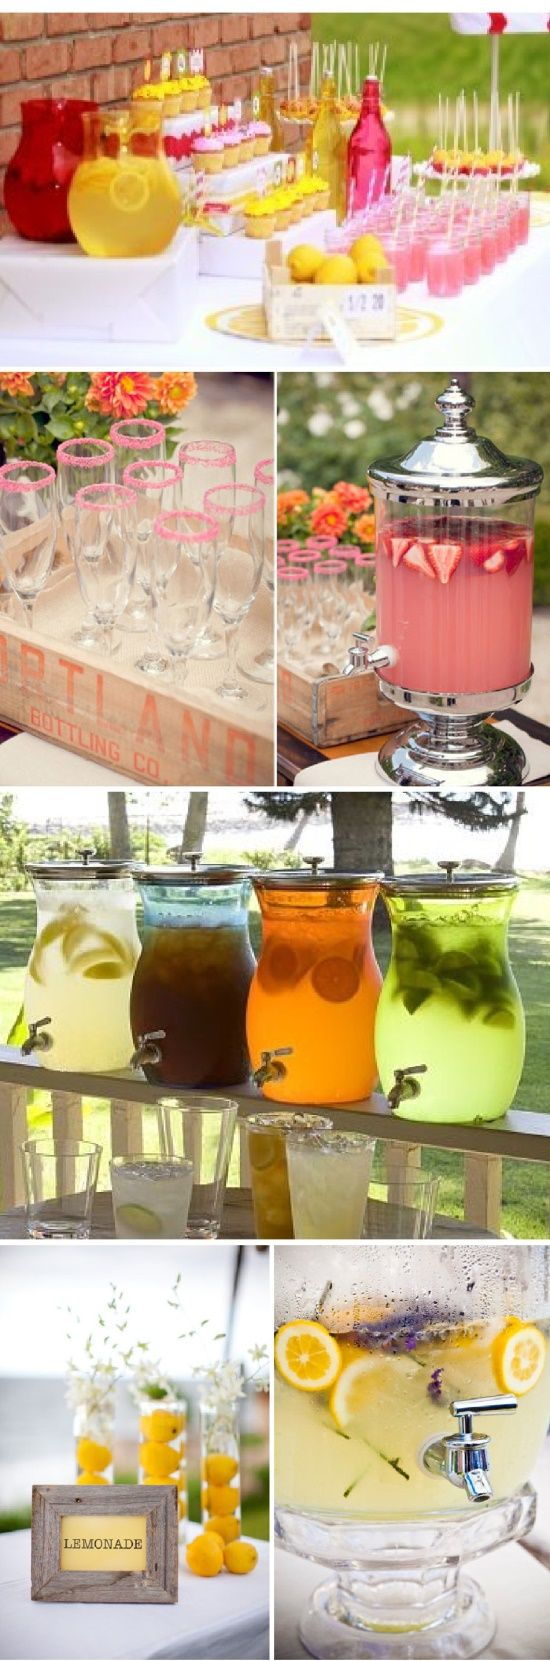 Lemonade Bar - great idea for a wedding or shower! With and without alcohol. Use small frames, labels or tags to indicate what